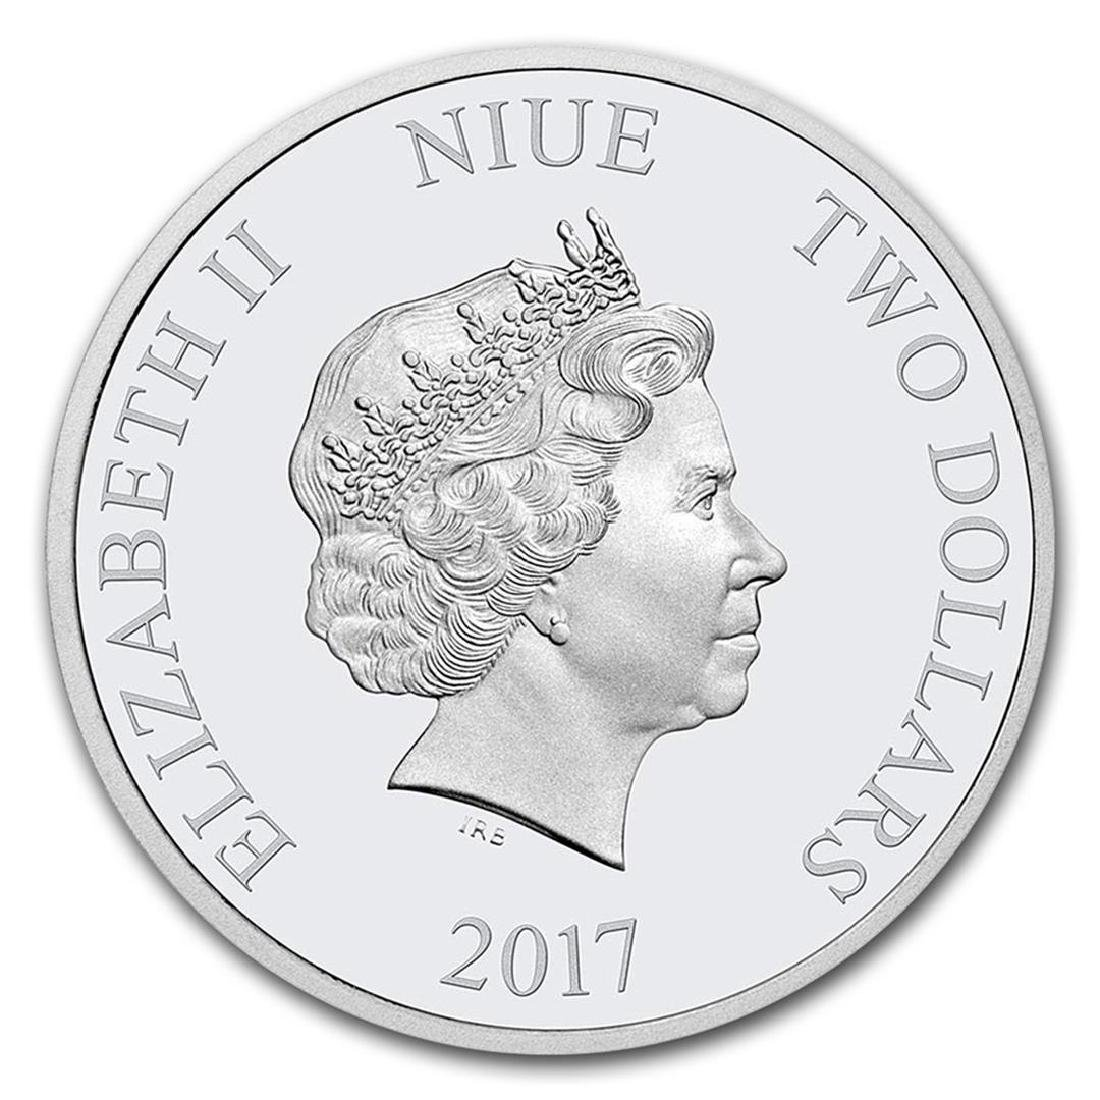 2017 Niue 1 oz Silver $2 Disney Love Coin - 2